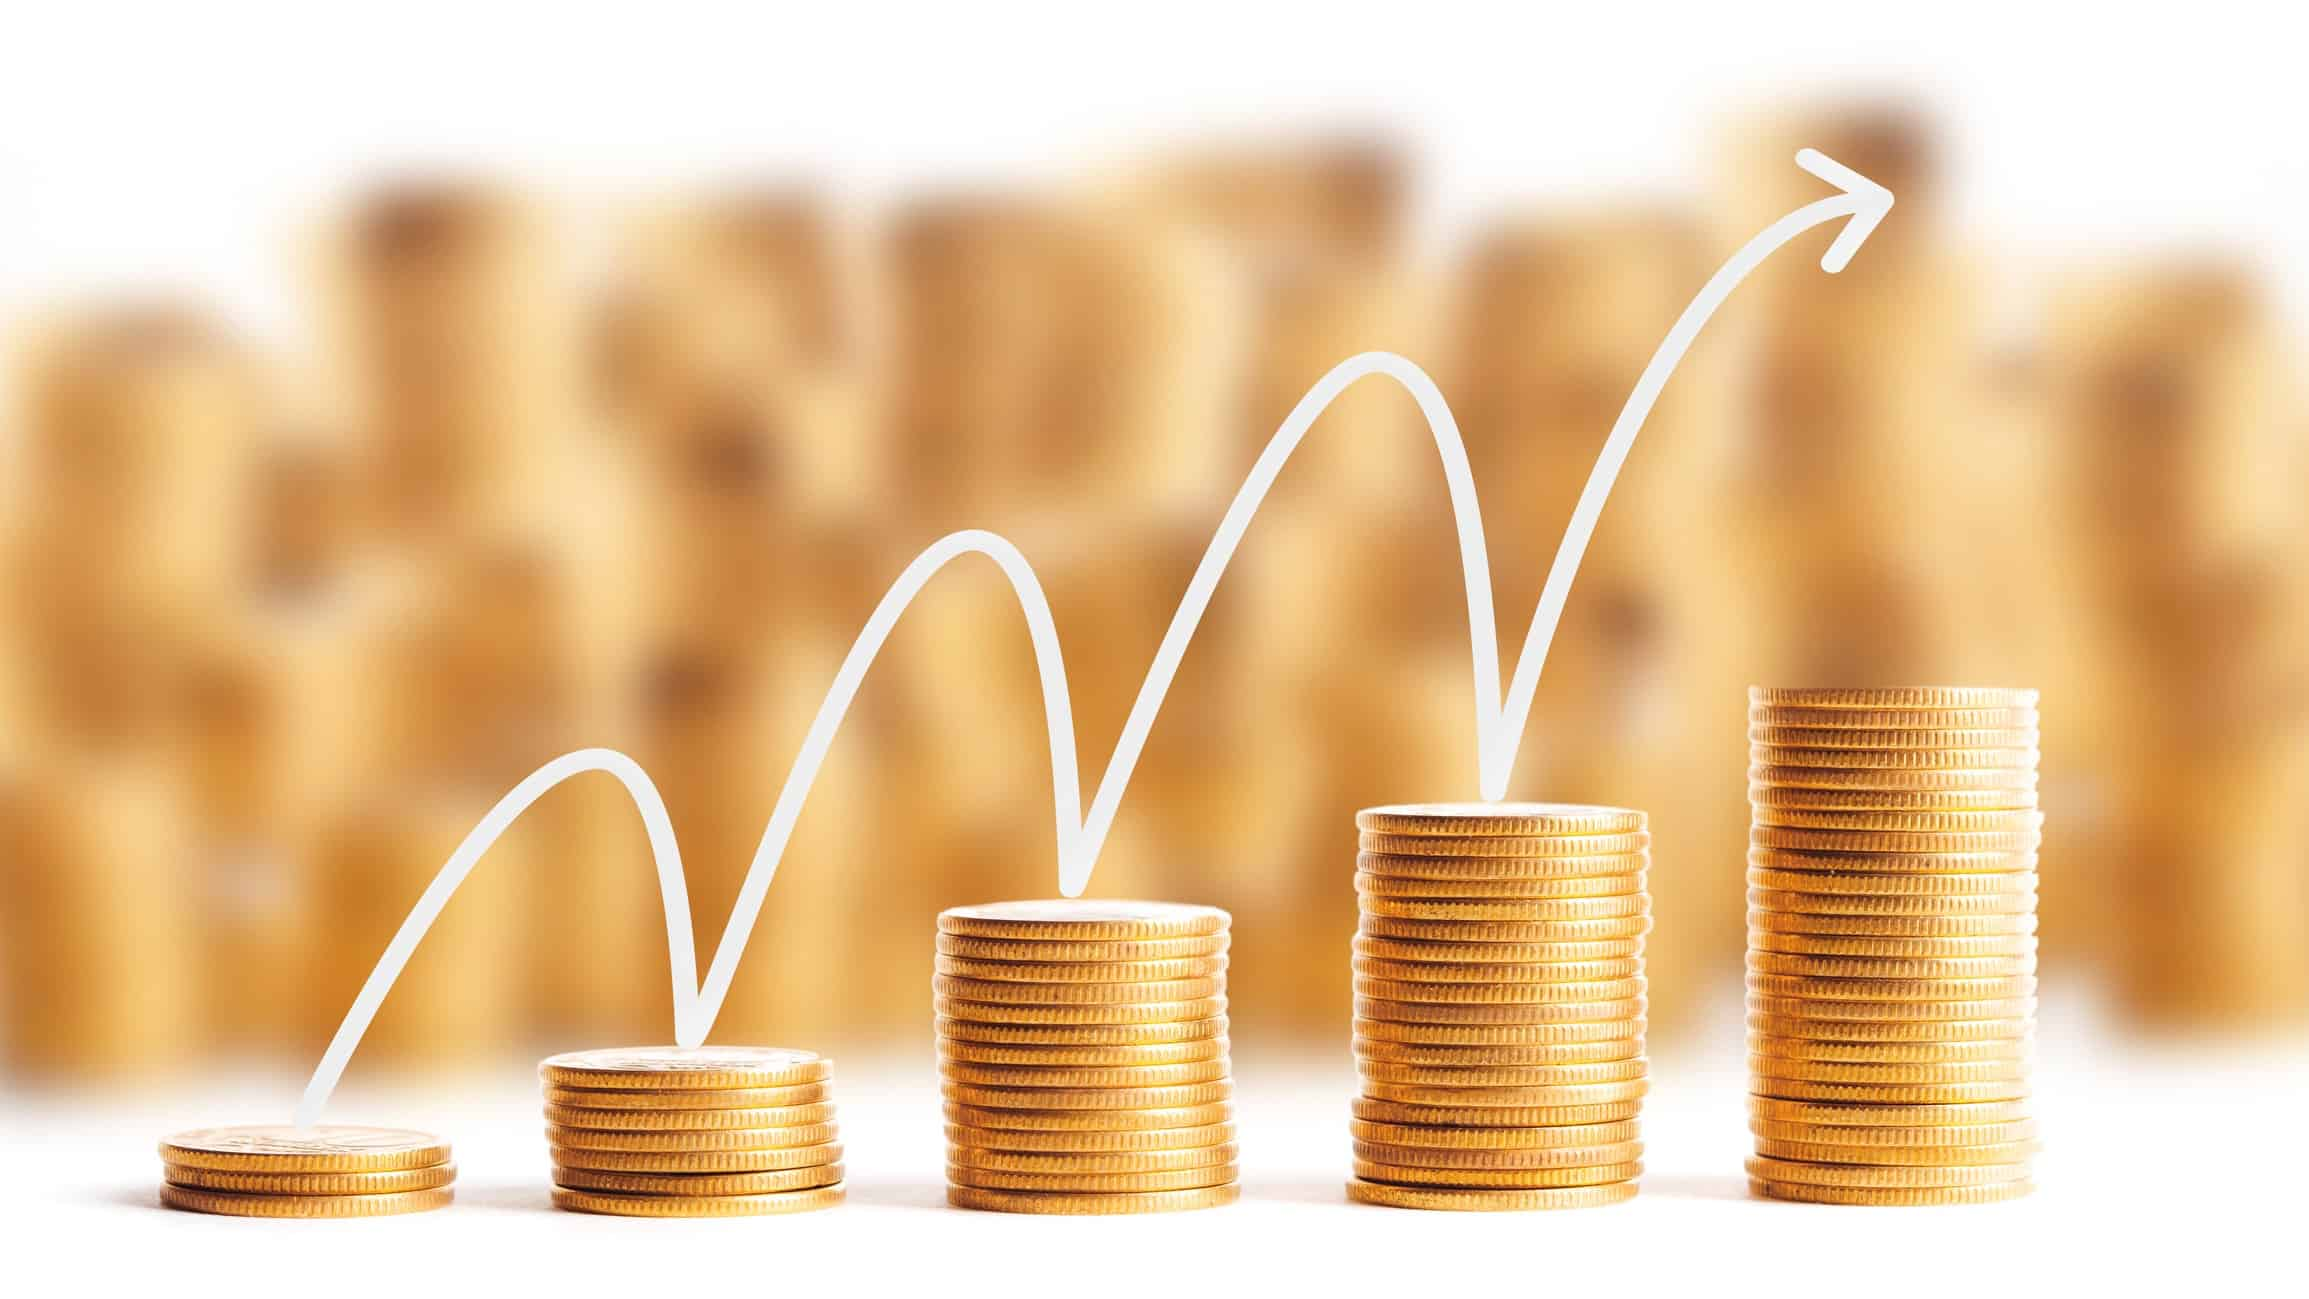 asx share price higher represented by stacks of gold coins growing higher